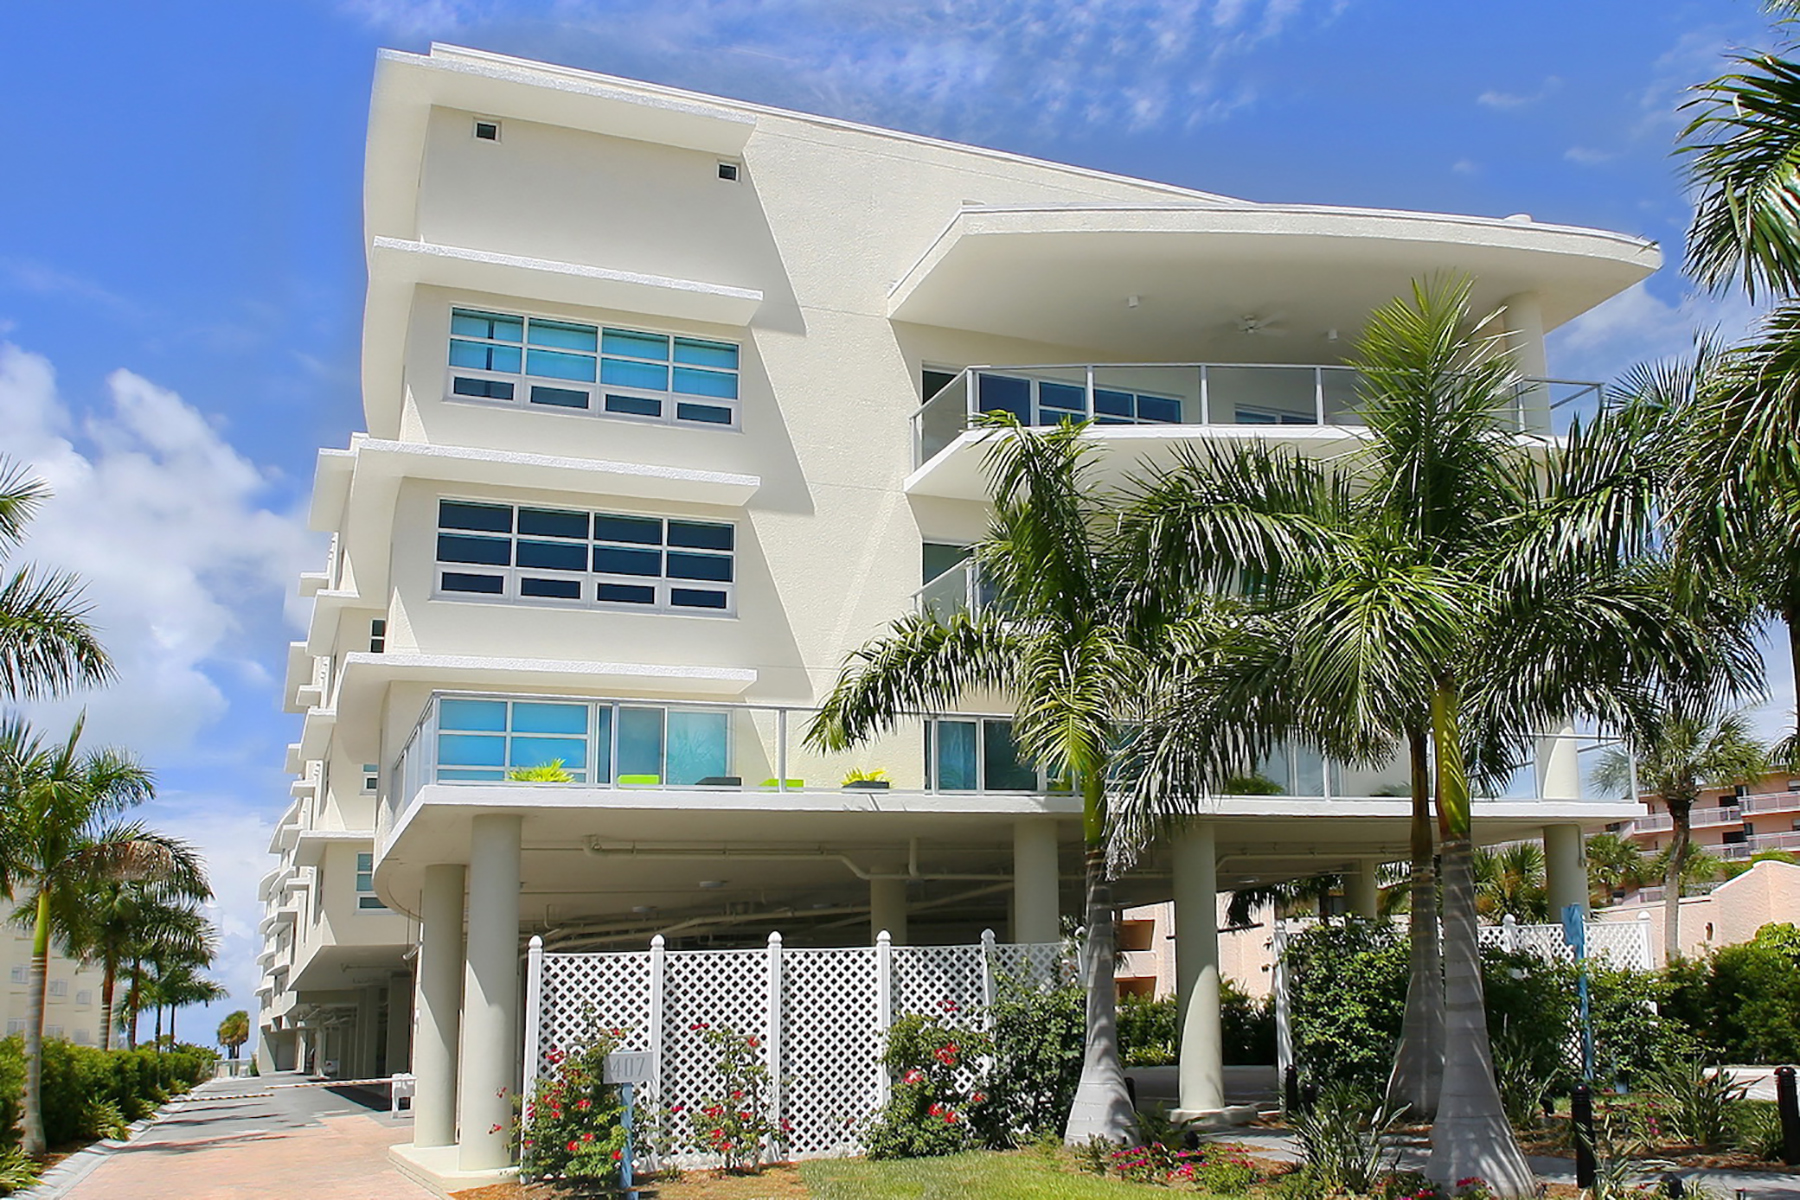 Condominium for Sale at CRESCENT SIESTA KEY 6512 Midnight Pass Rd 401, Sarasota, Florida 34242 United States